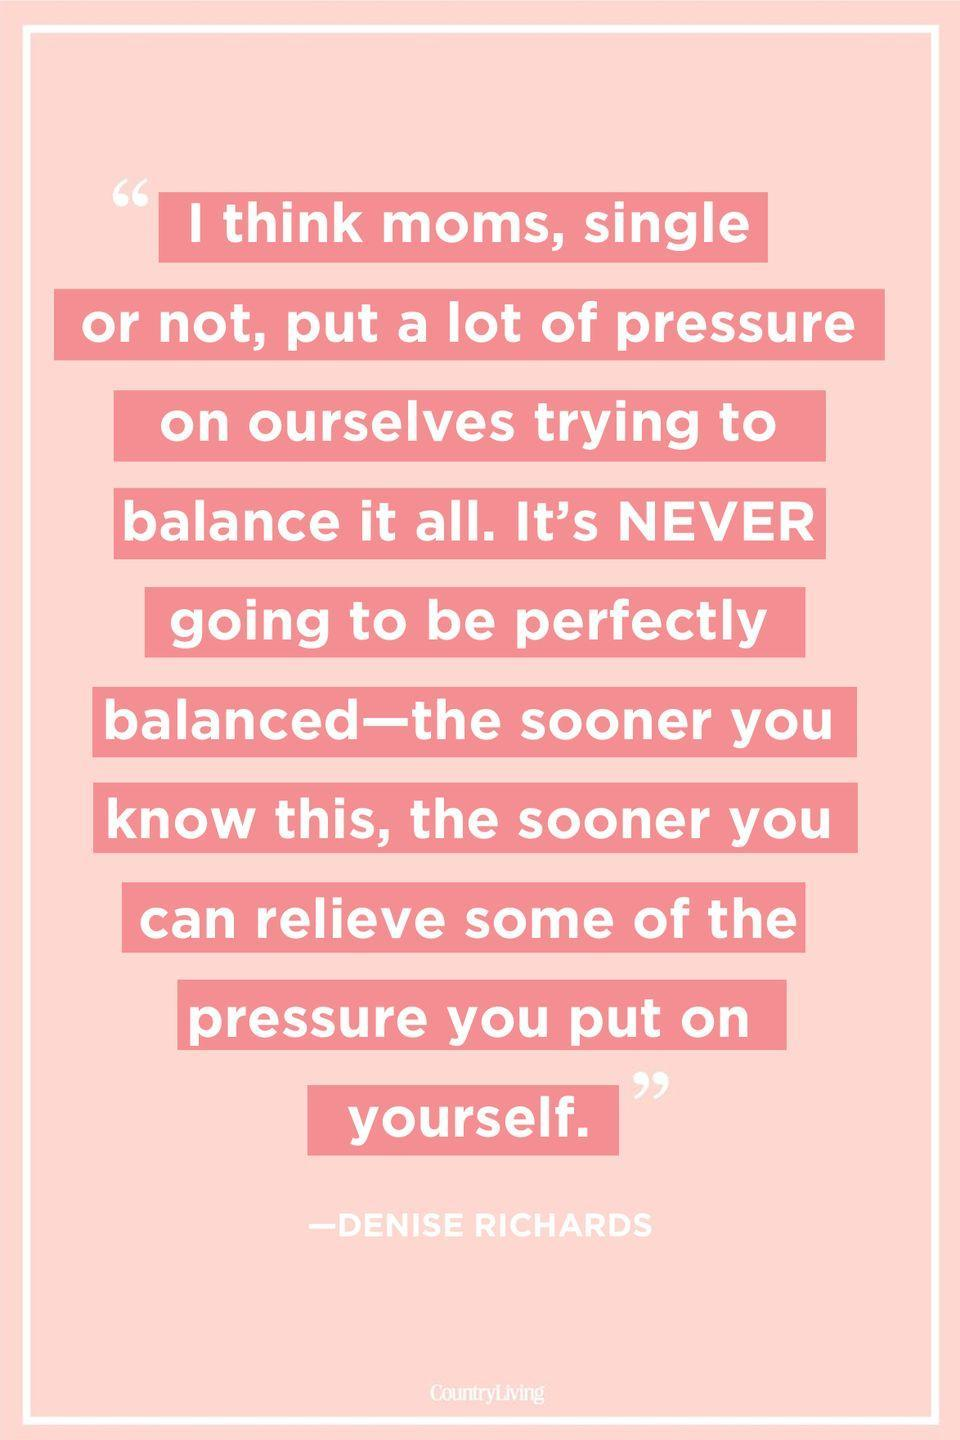 "<p>""I think moms, single or not, put a lot of pressure on ourselves trying to balance it all. It's NEVER going to be perfectly balanced—the sooner you know this, the sooner you can relieve some of the pressure you put on yourself.""</p>"